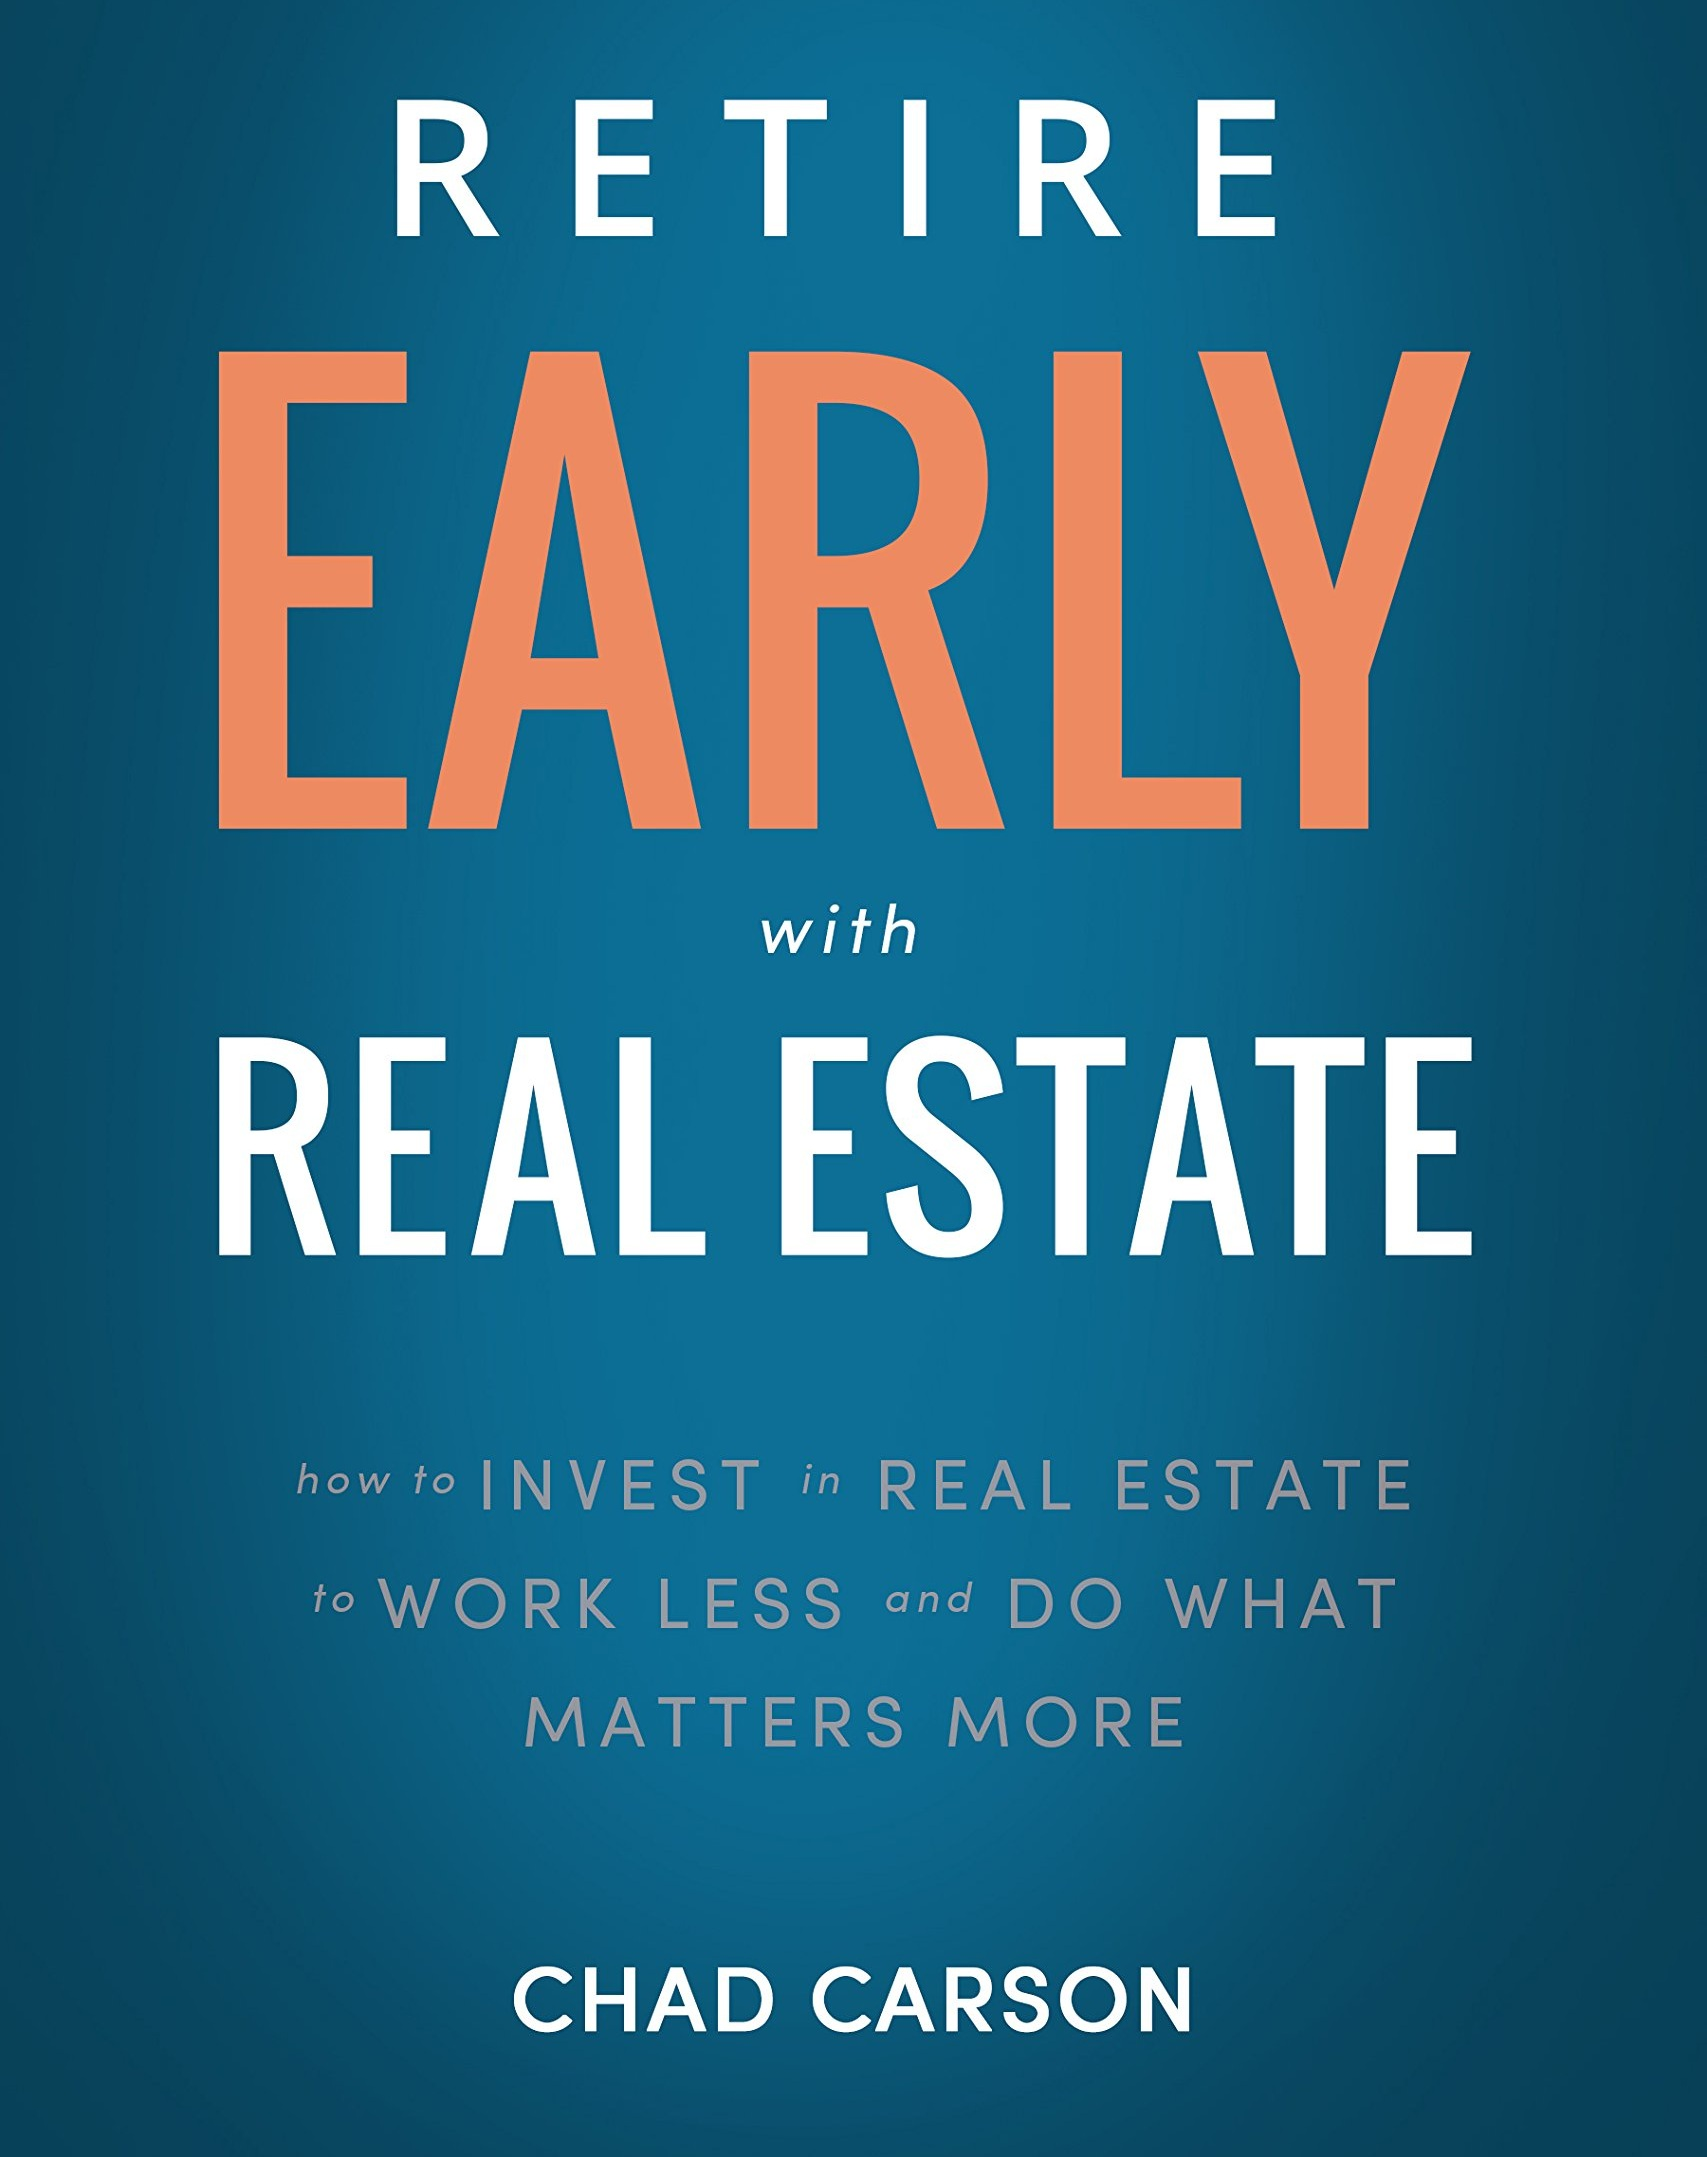 Retire+Early+with+Real+Estate.jpg